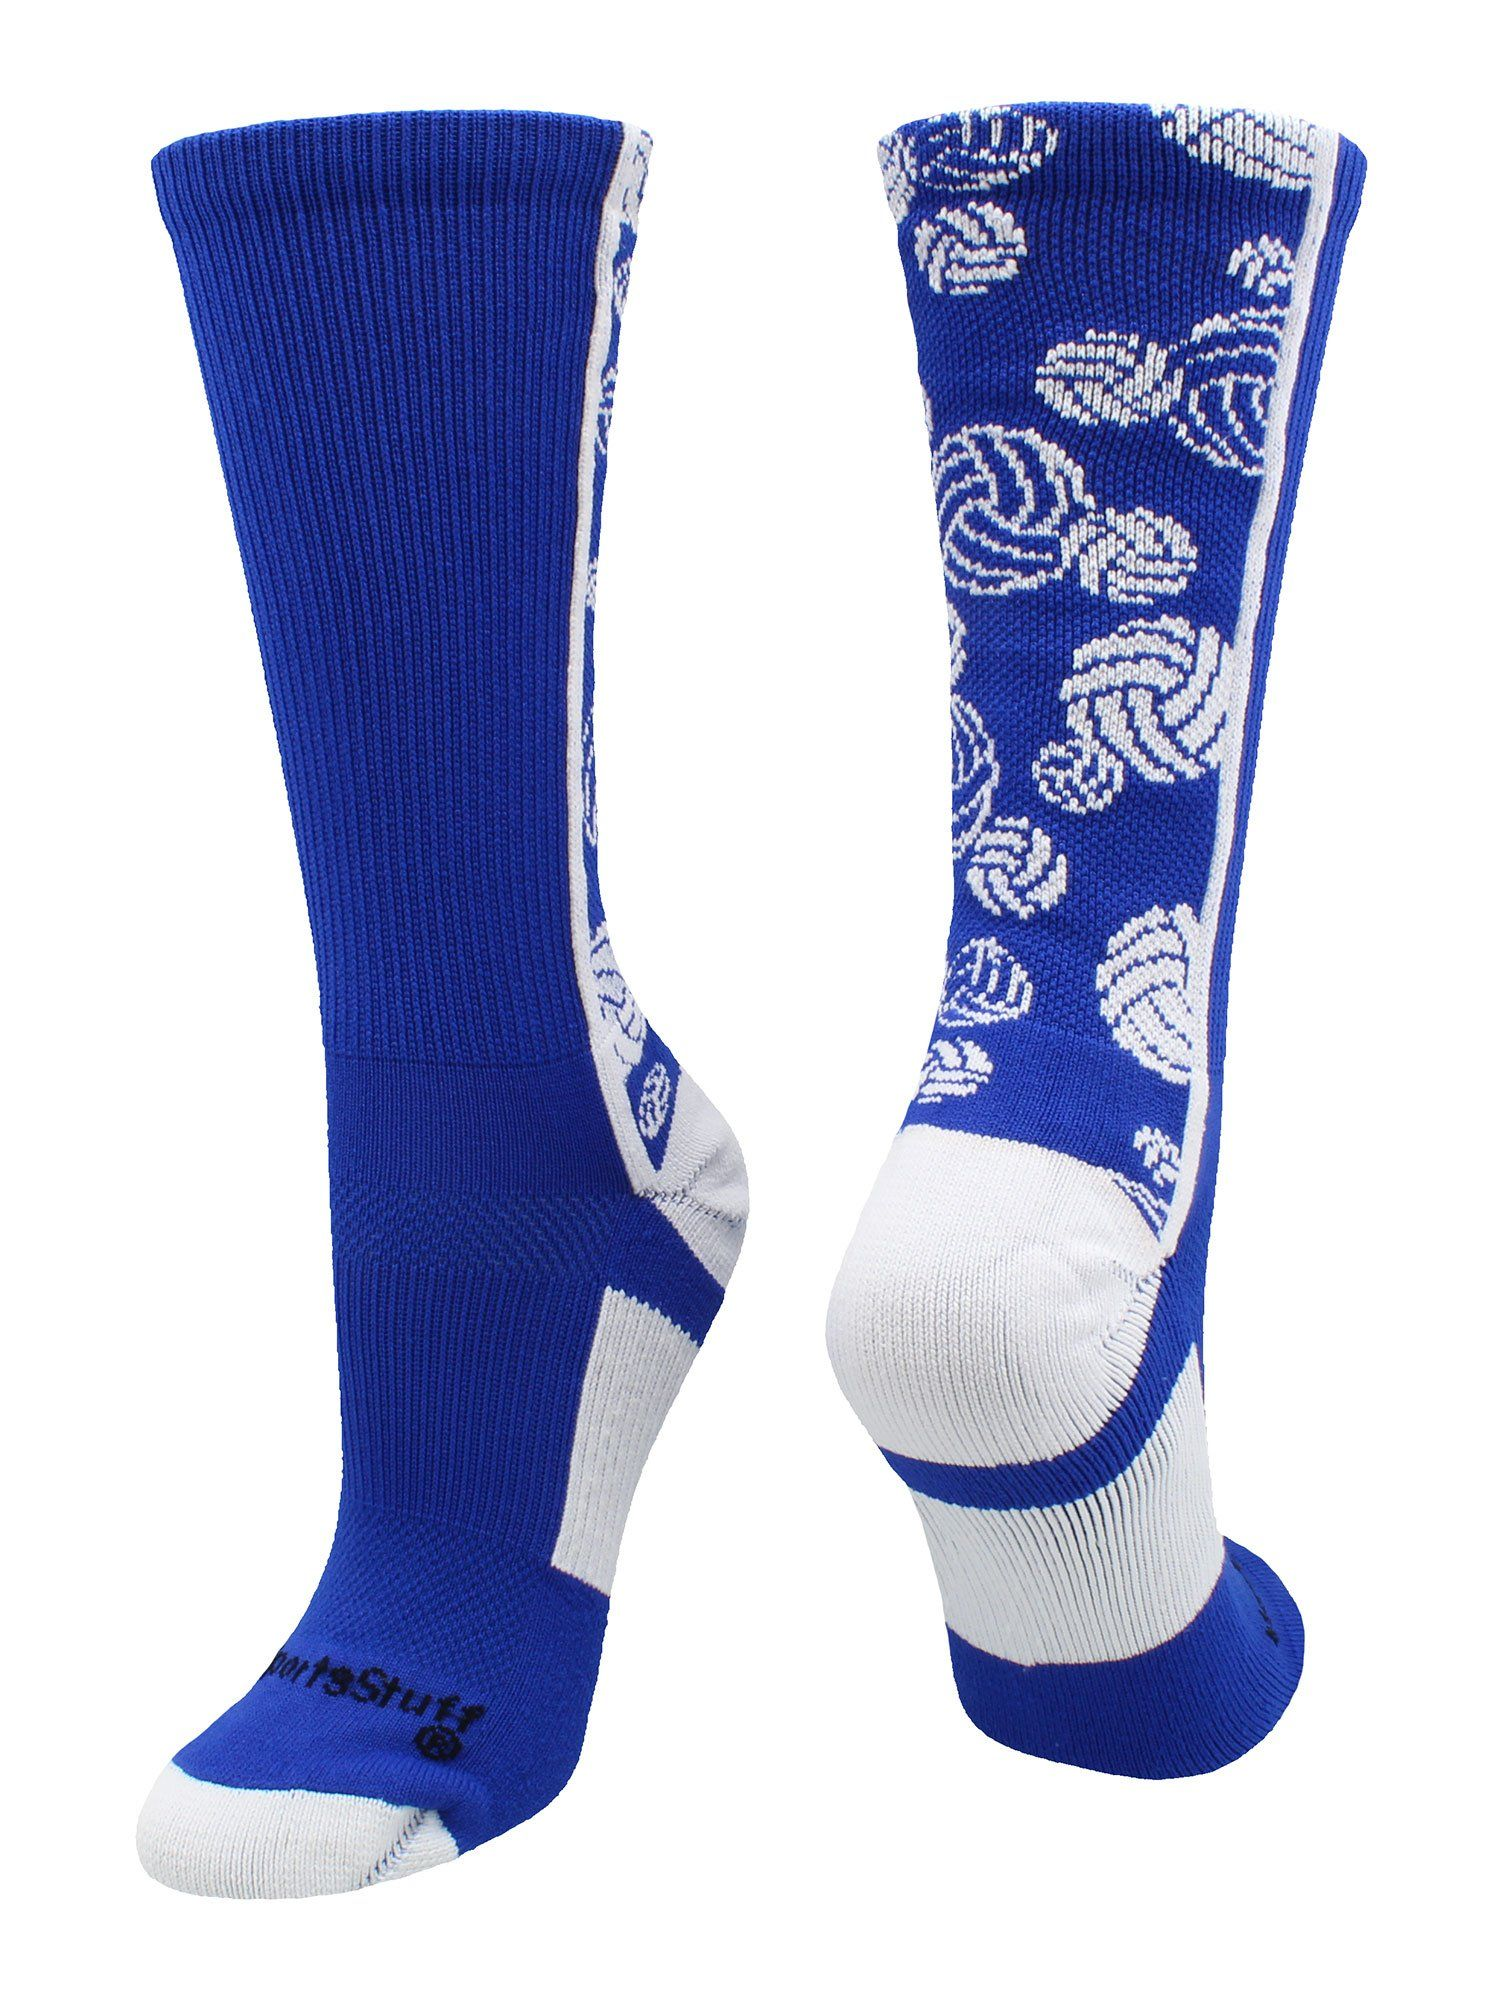 Crazy Volleyball Logo Crew Socks Multiple Colors Socks Crew Socks Volleyball Socks